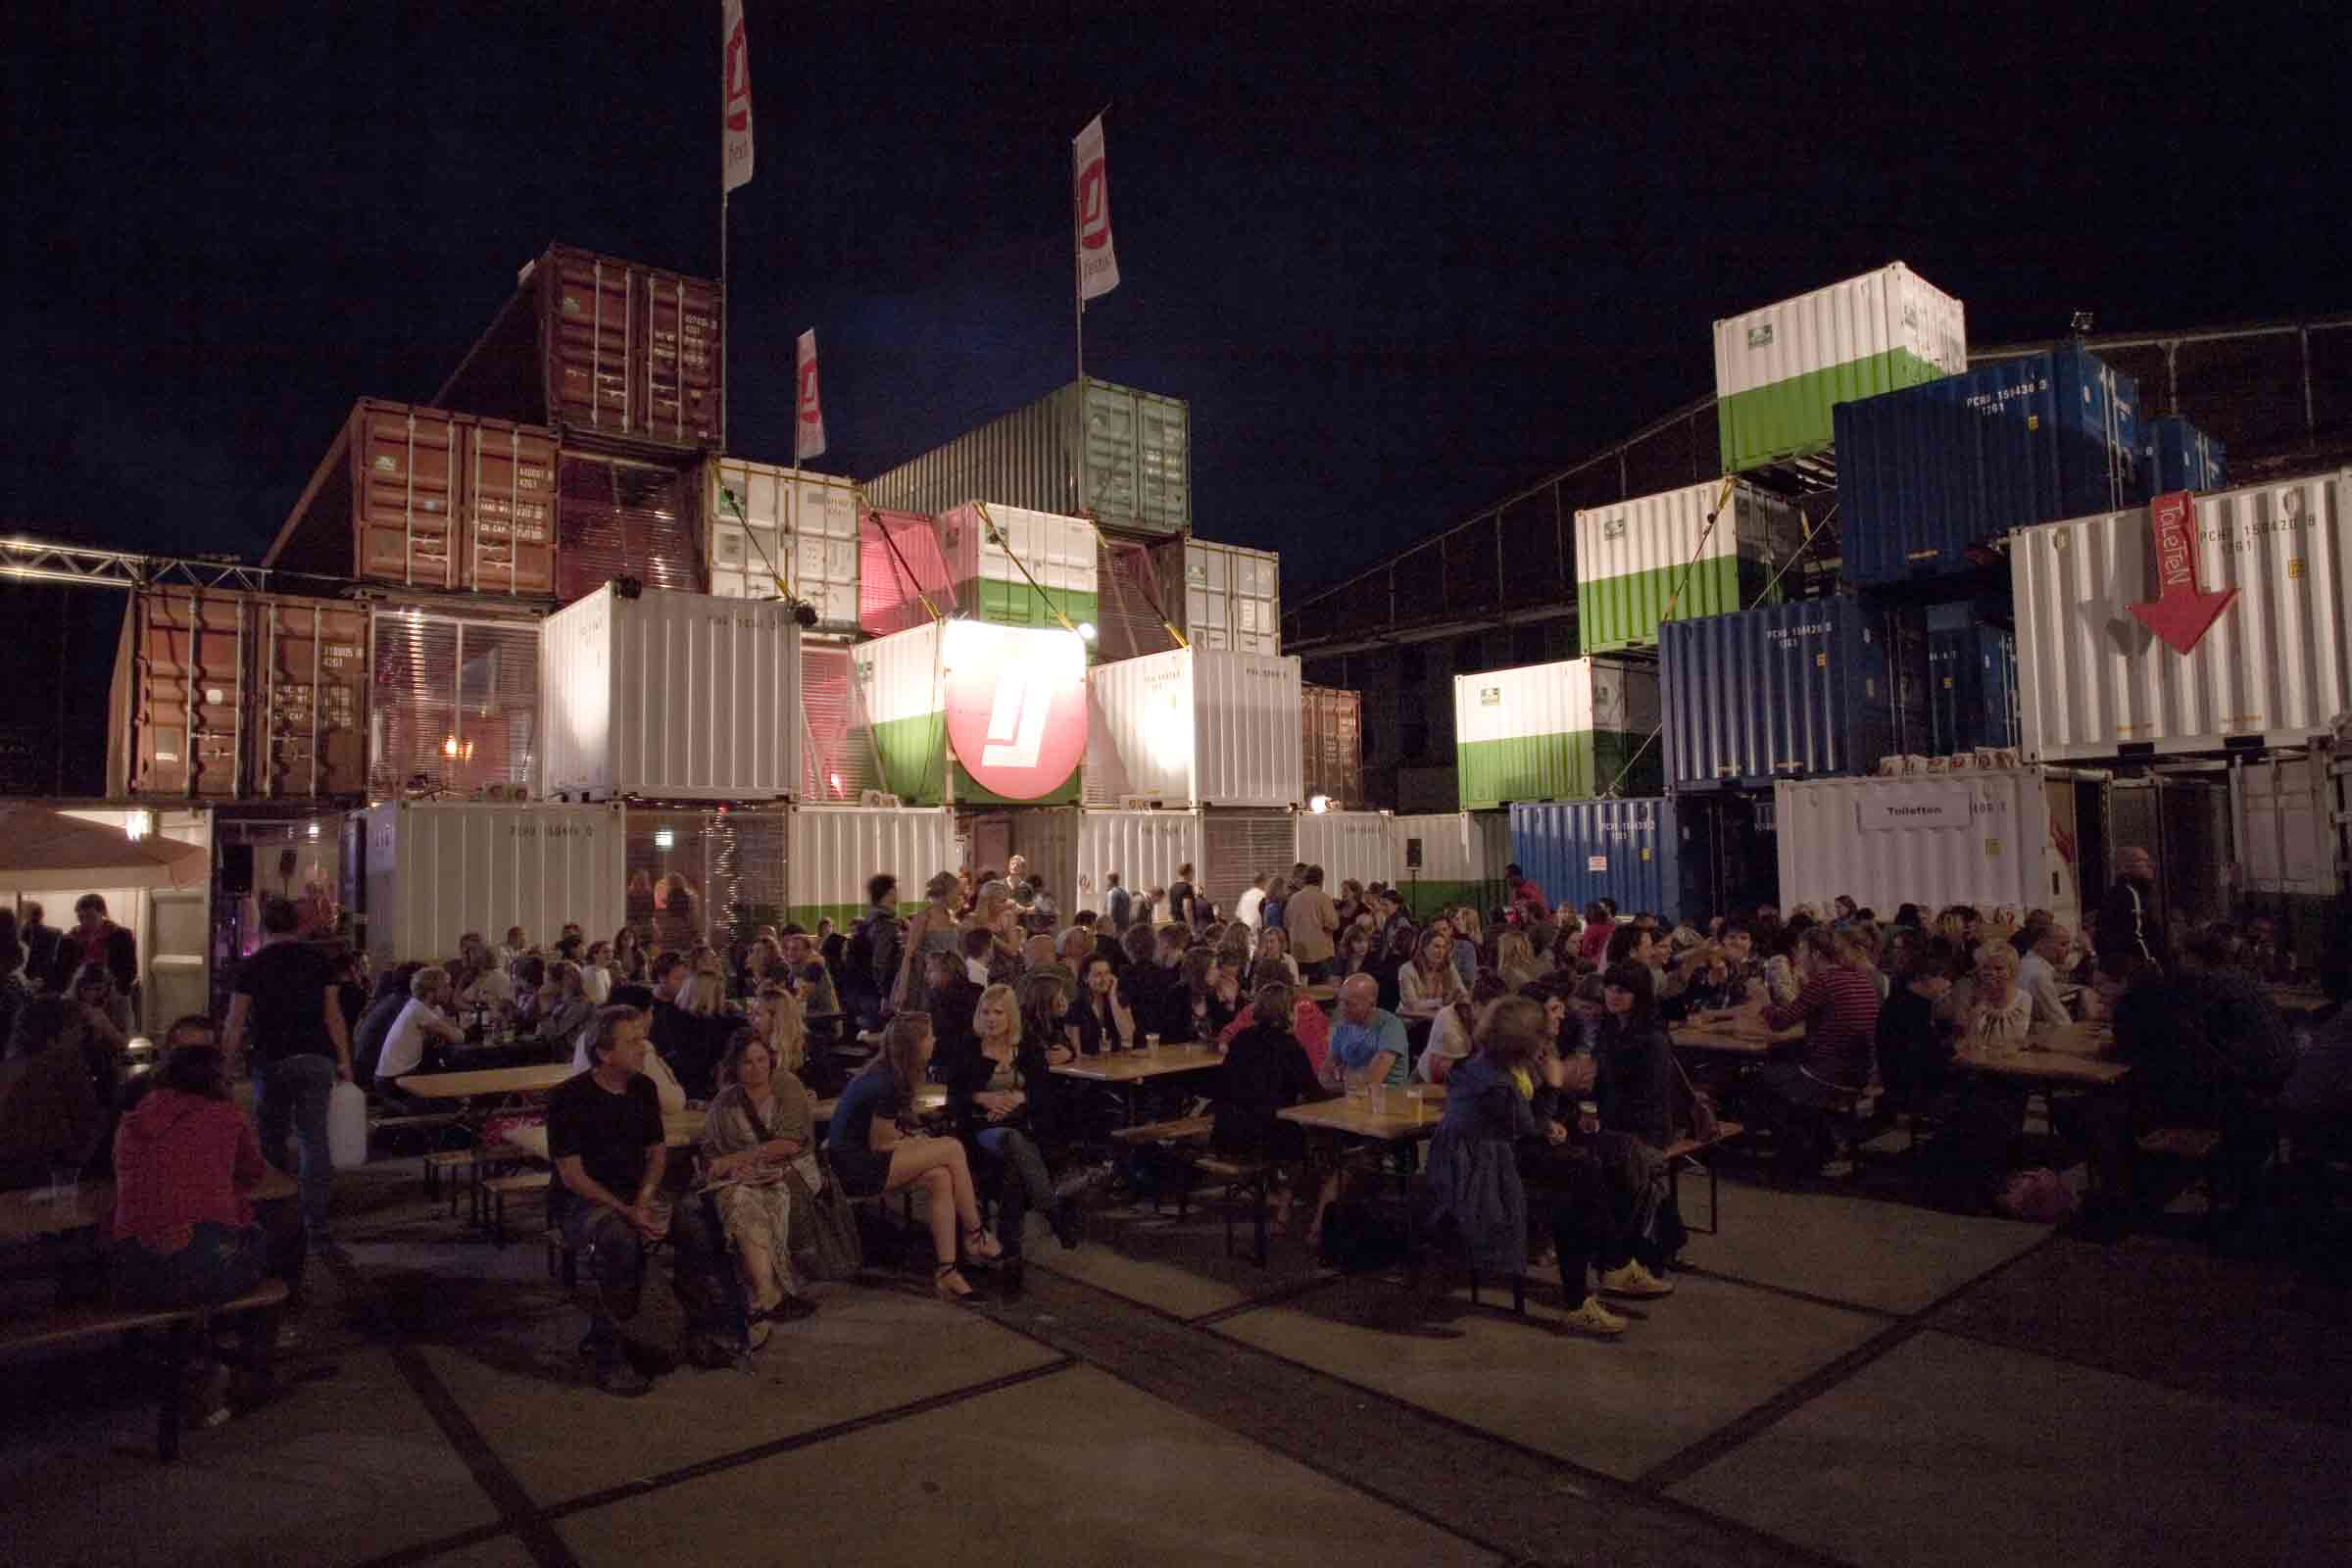 BETA office for architecture and the city Amsterdam NDSM temporary shipping container city night view